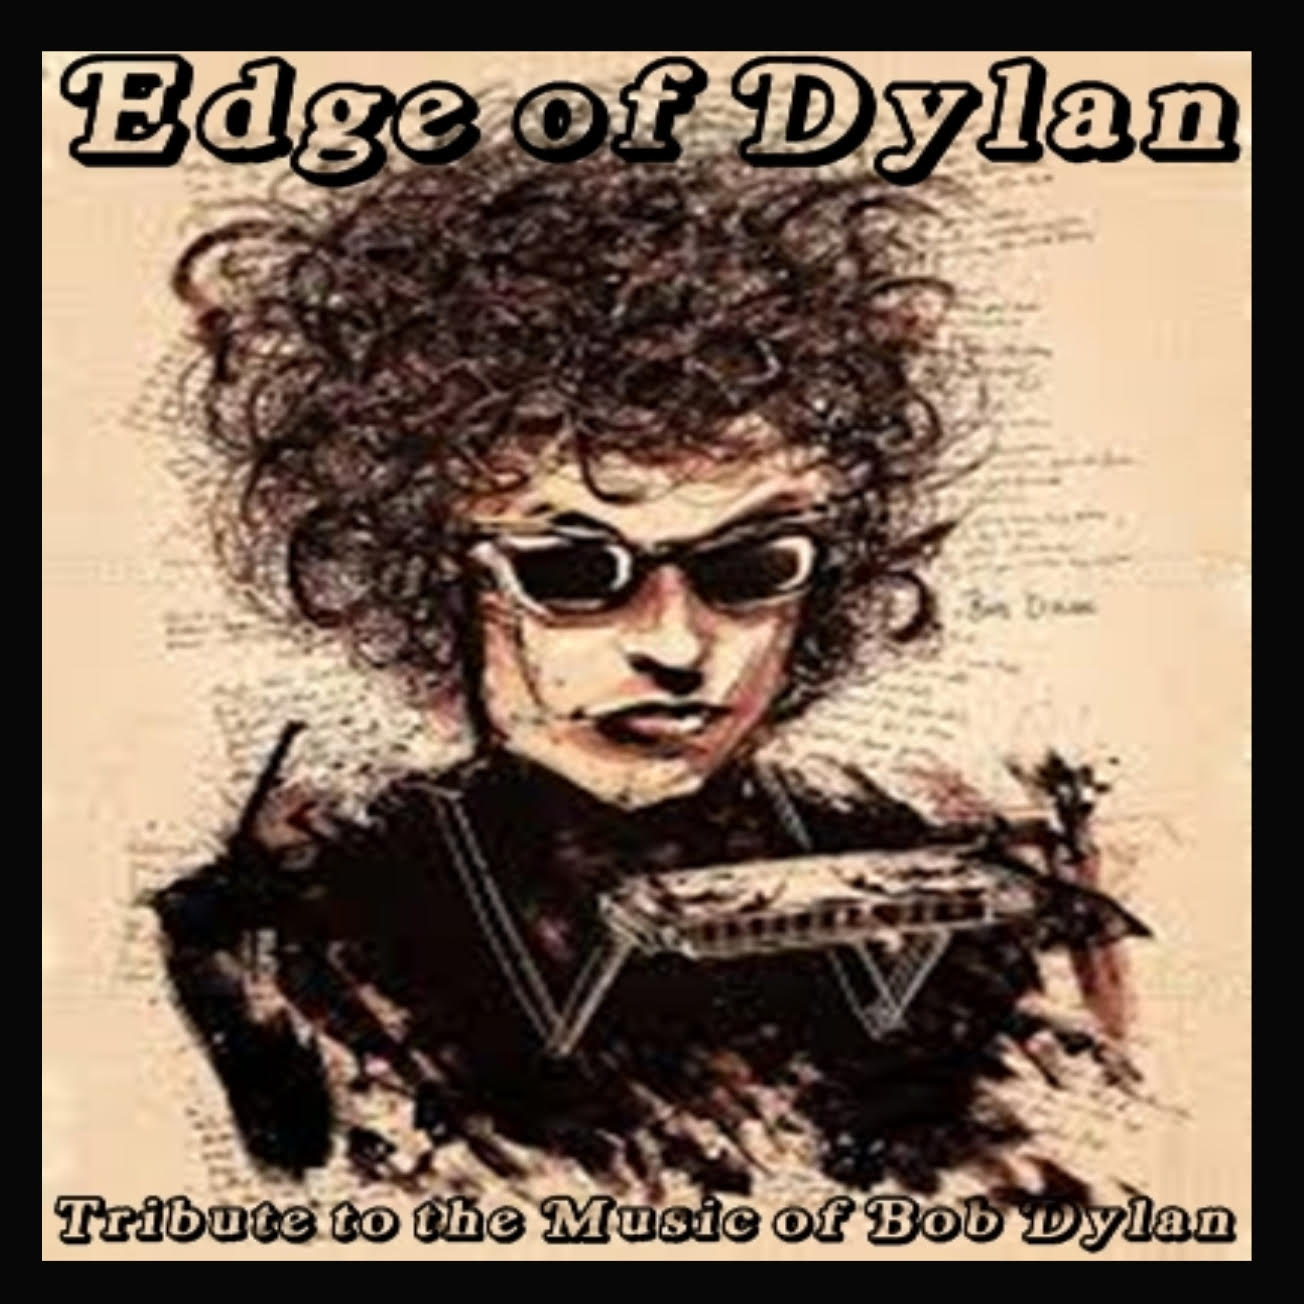 The Edge Of Dylan - A Tribute to Bob Dylan